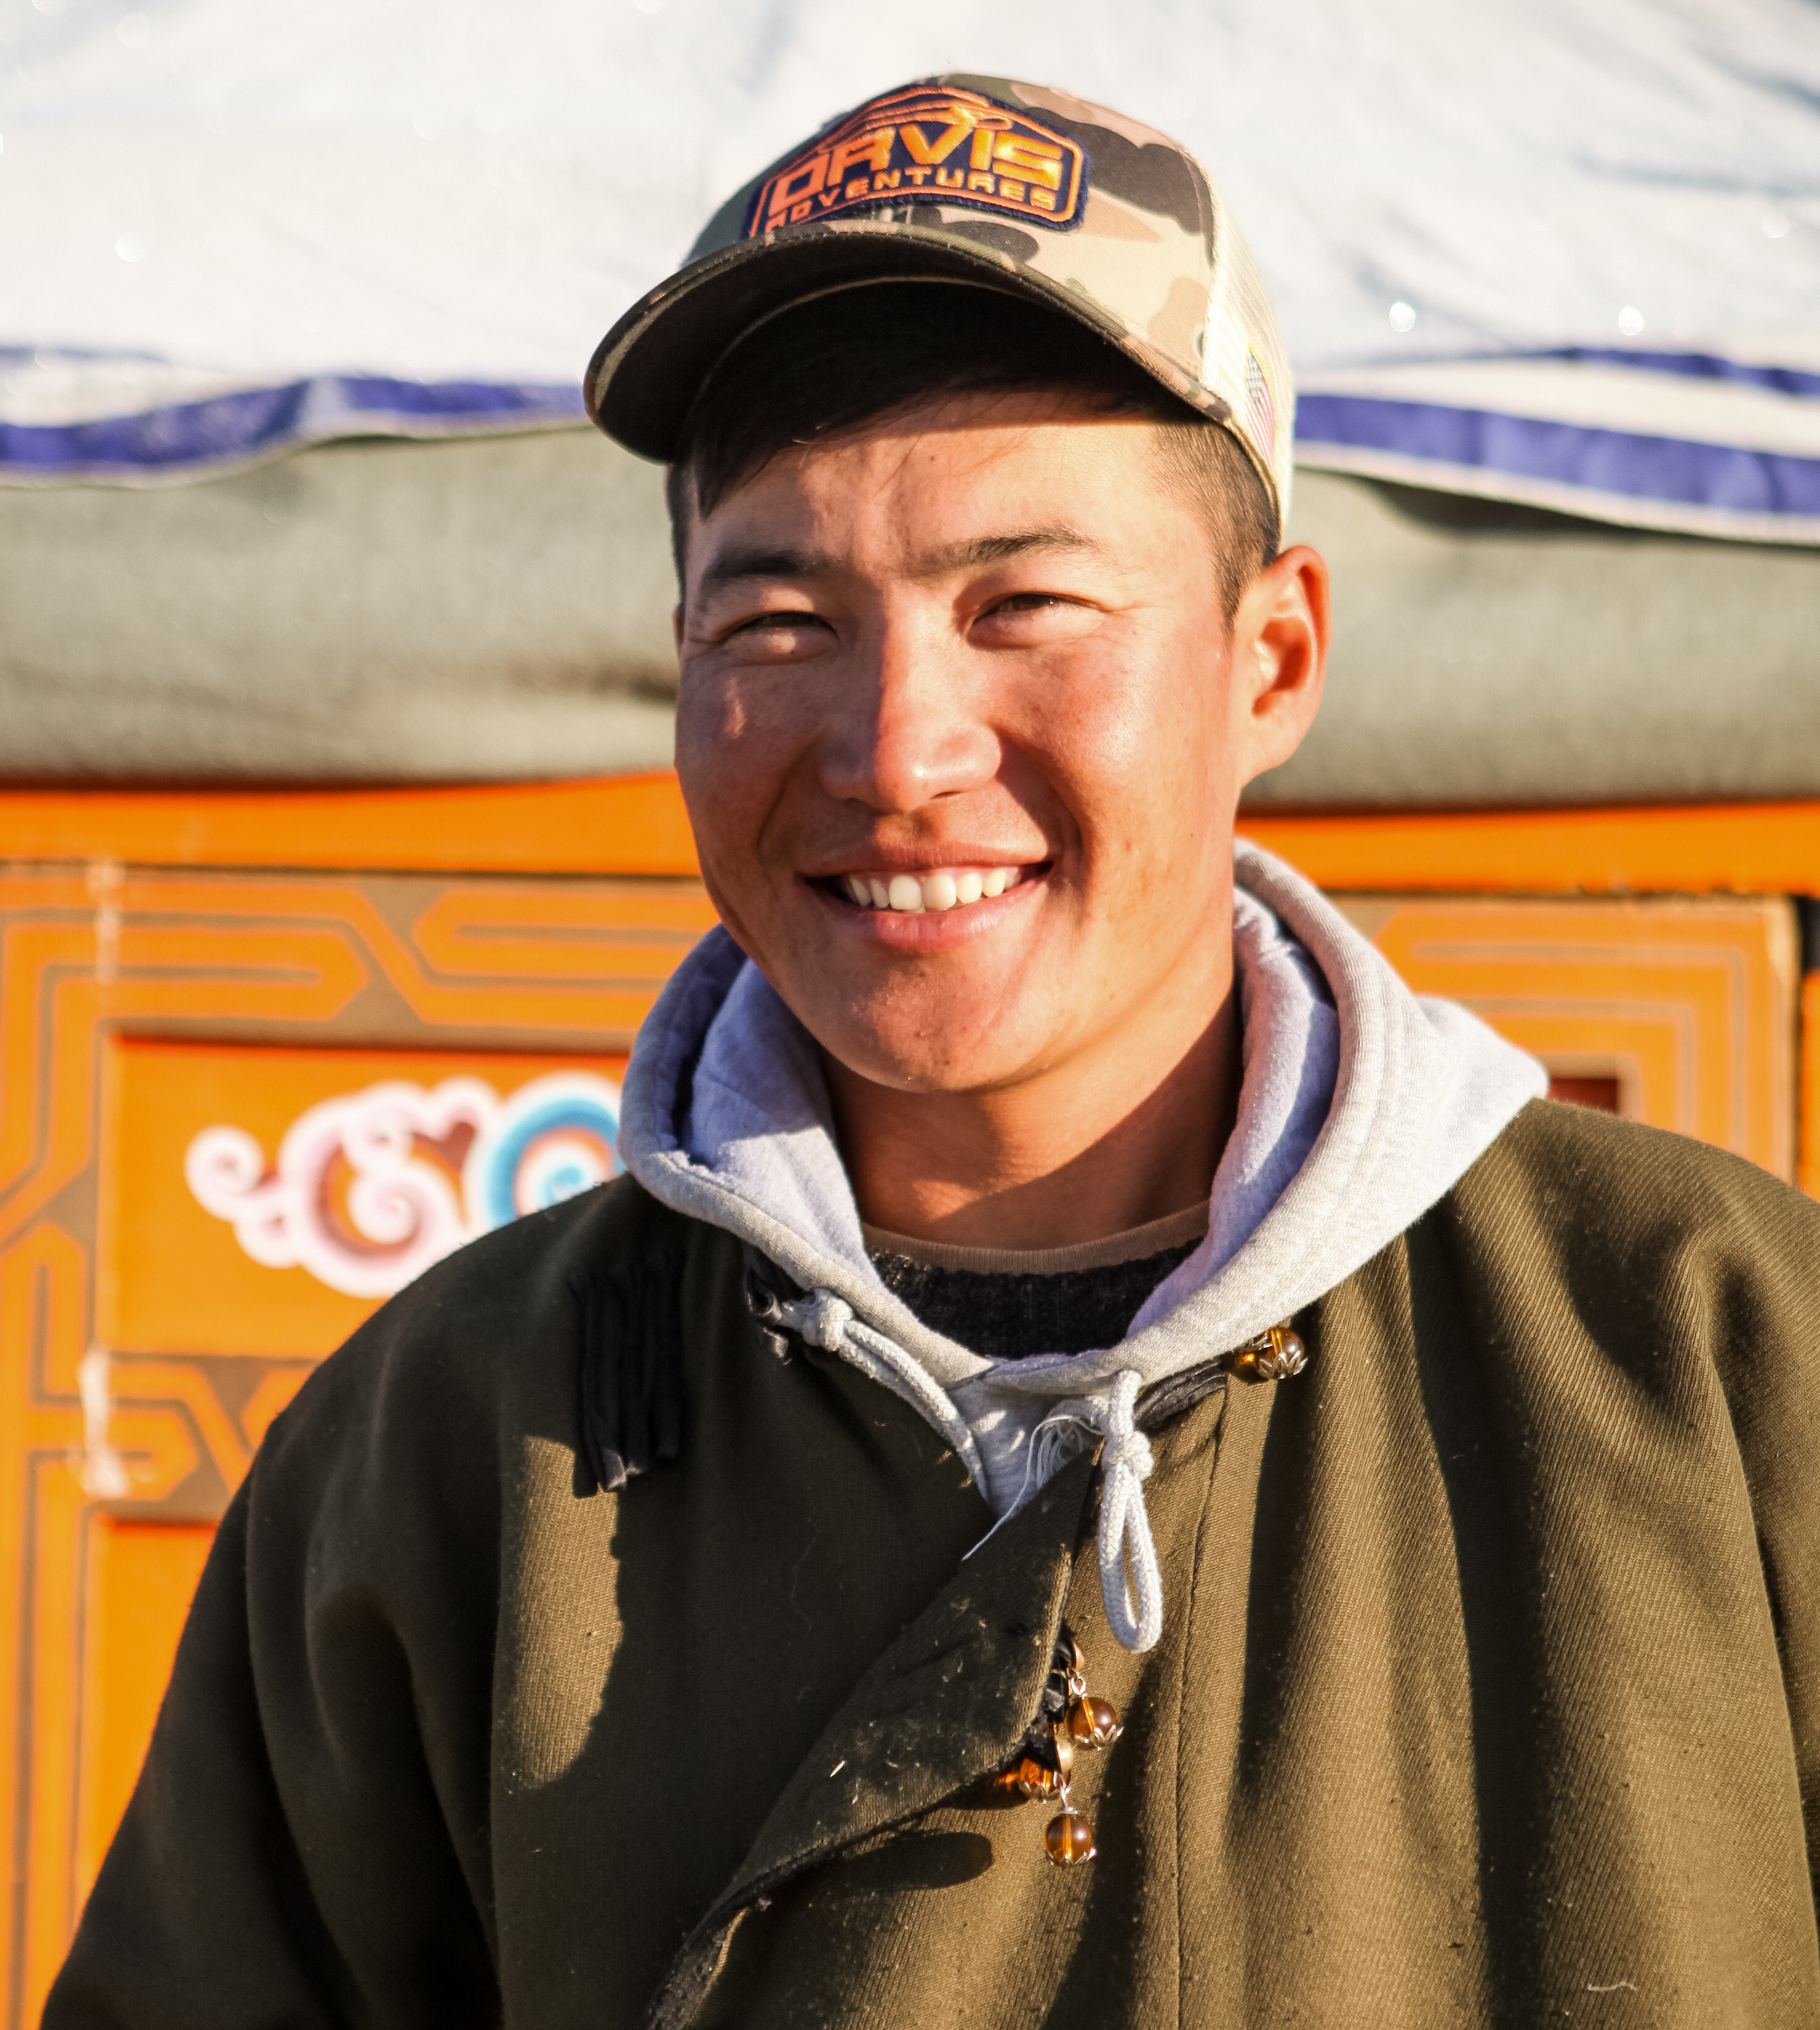 Battulga (Tulga) is pure joy!   He grew up on these rivers and has fished them with his family since childhood.  He is passionate about conservation and making certain every guest smiles all day long.  Tulga makes the Mongolia experience exceptional.